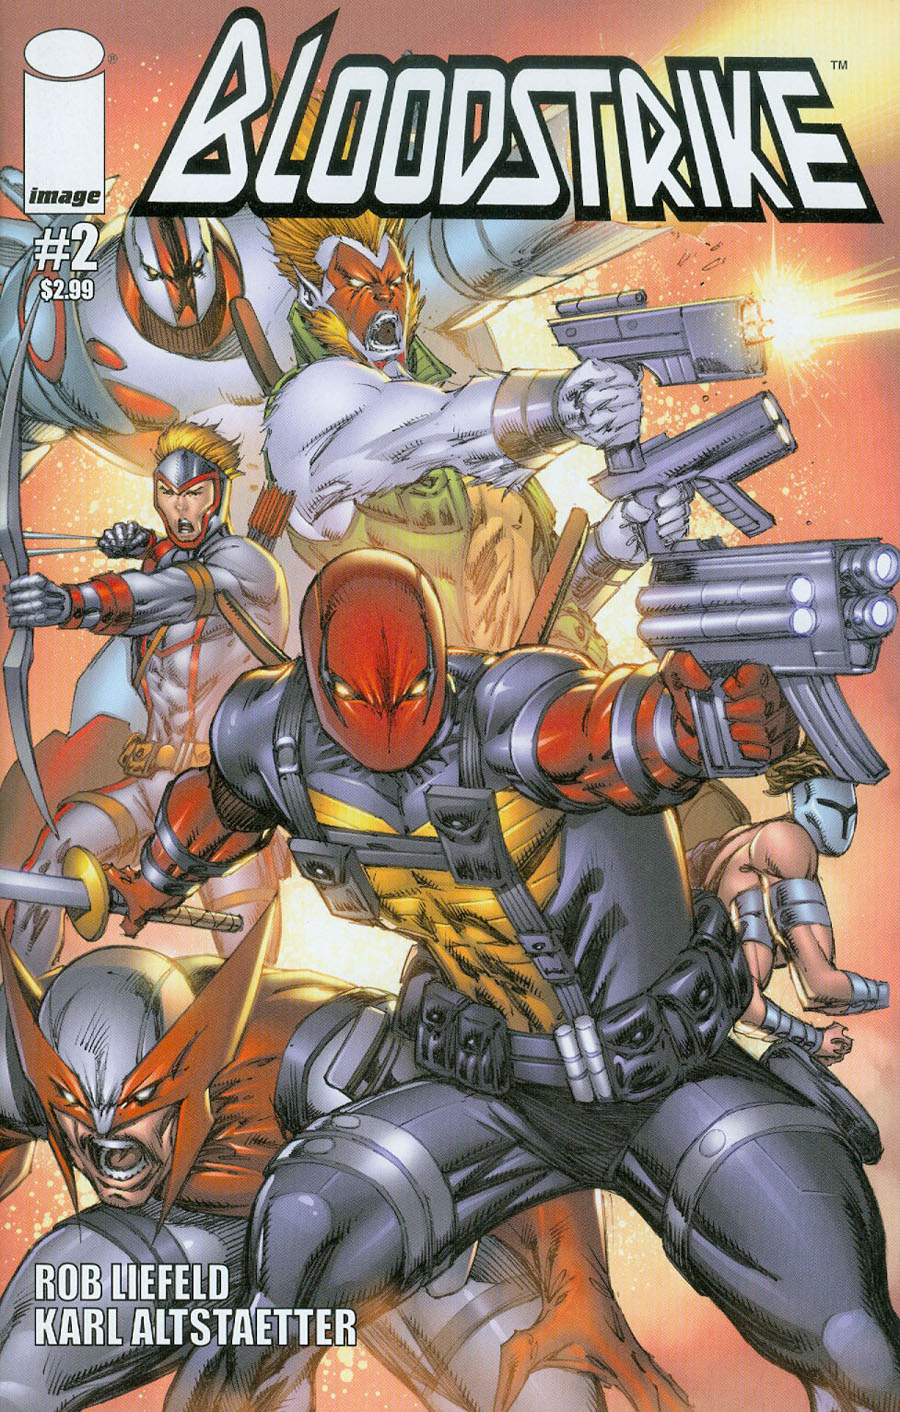 Bloodstrike Vol 2 #2 Cover A Regular Rob Liefeld Cover